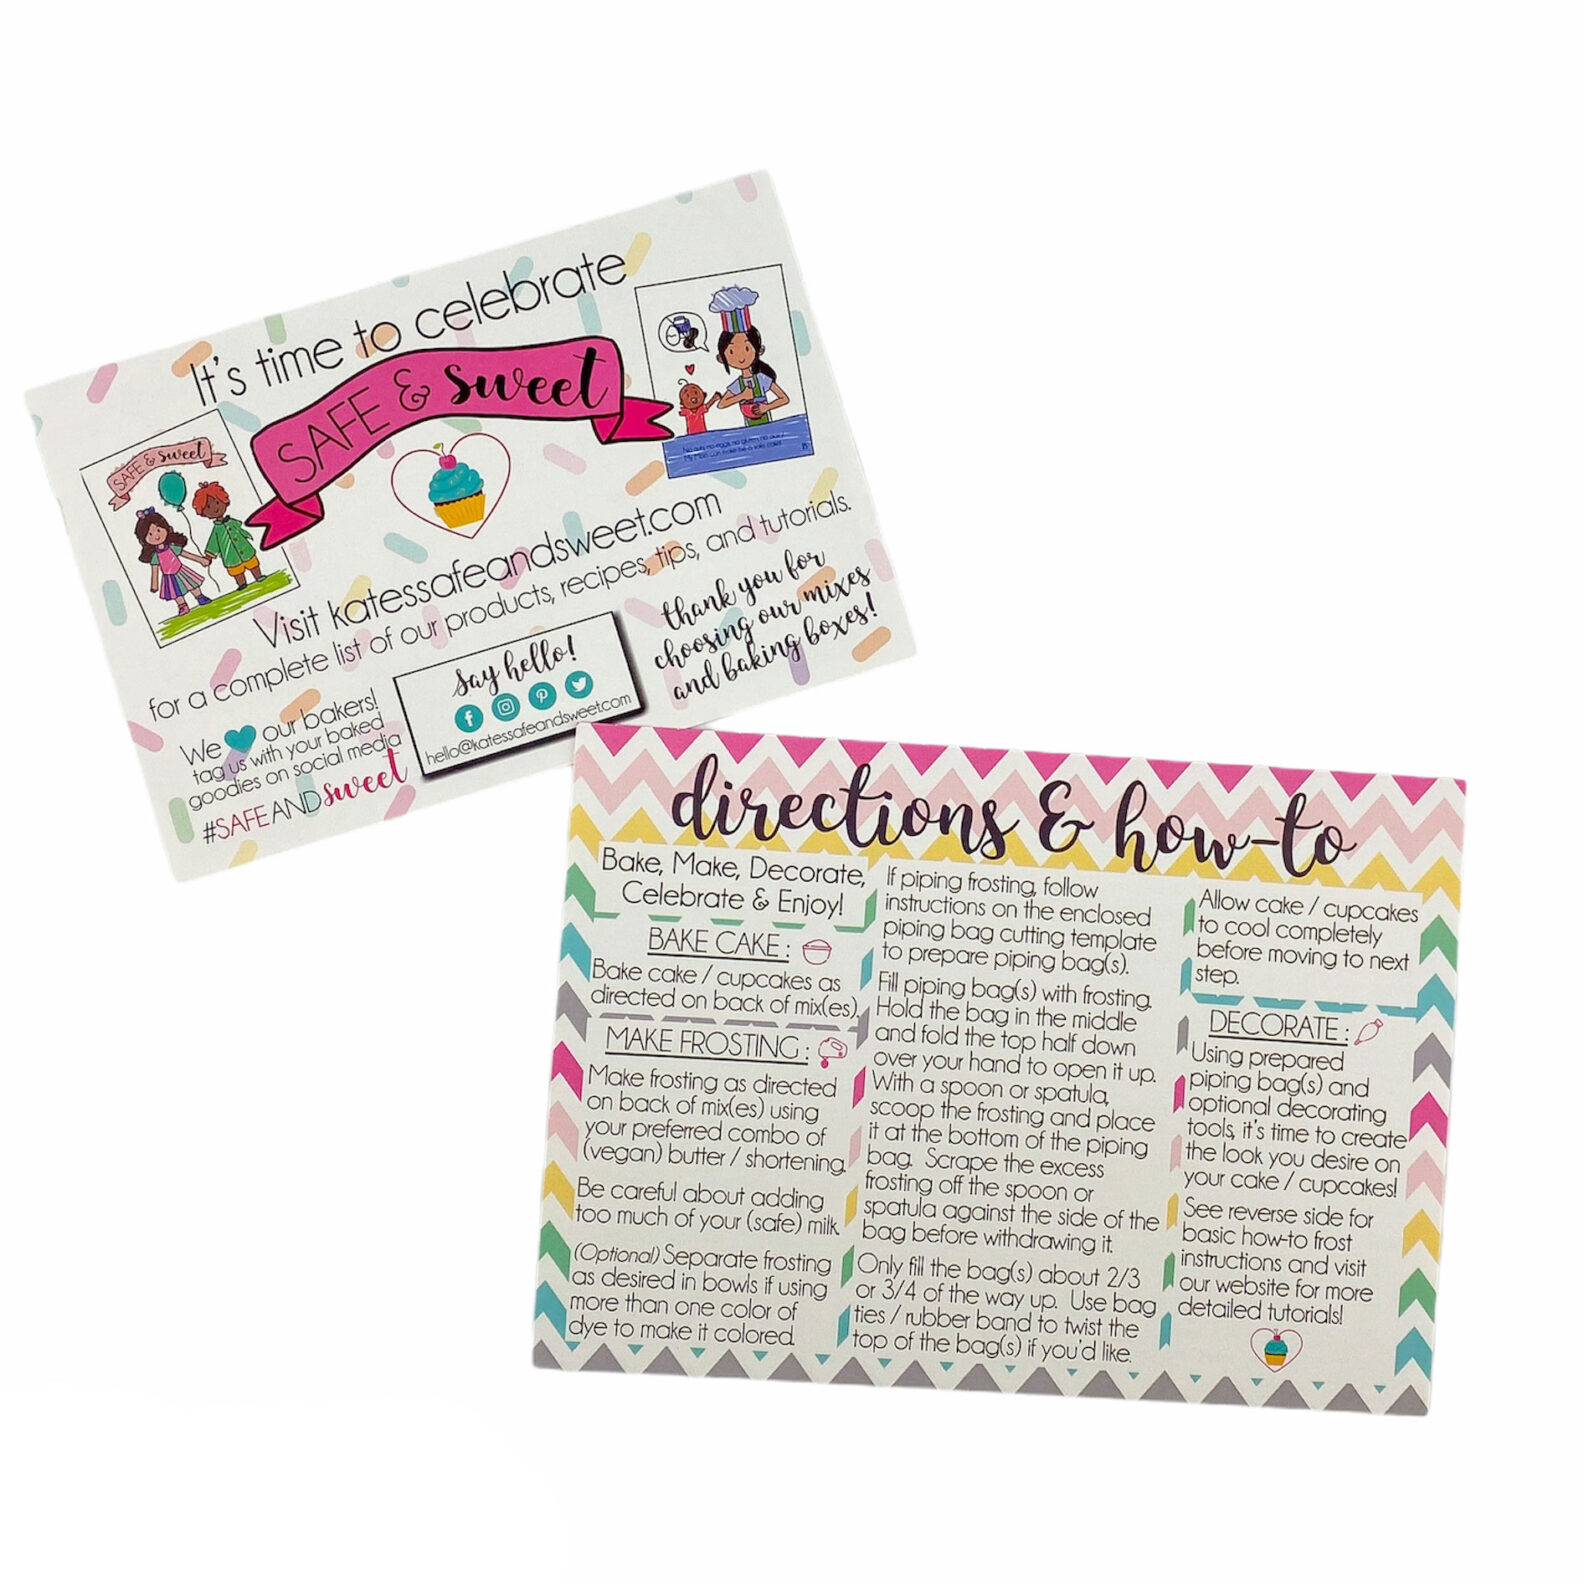 Kate's-Safe-and-Sweet---Directions-&-How-to-Cards